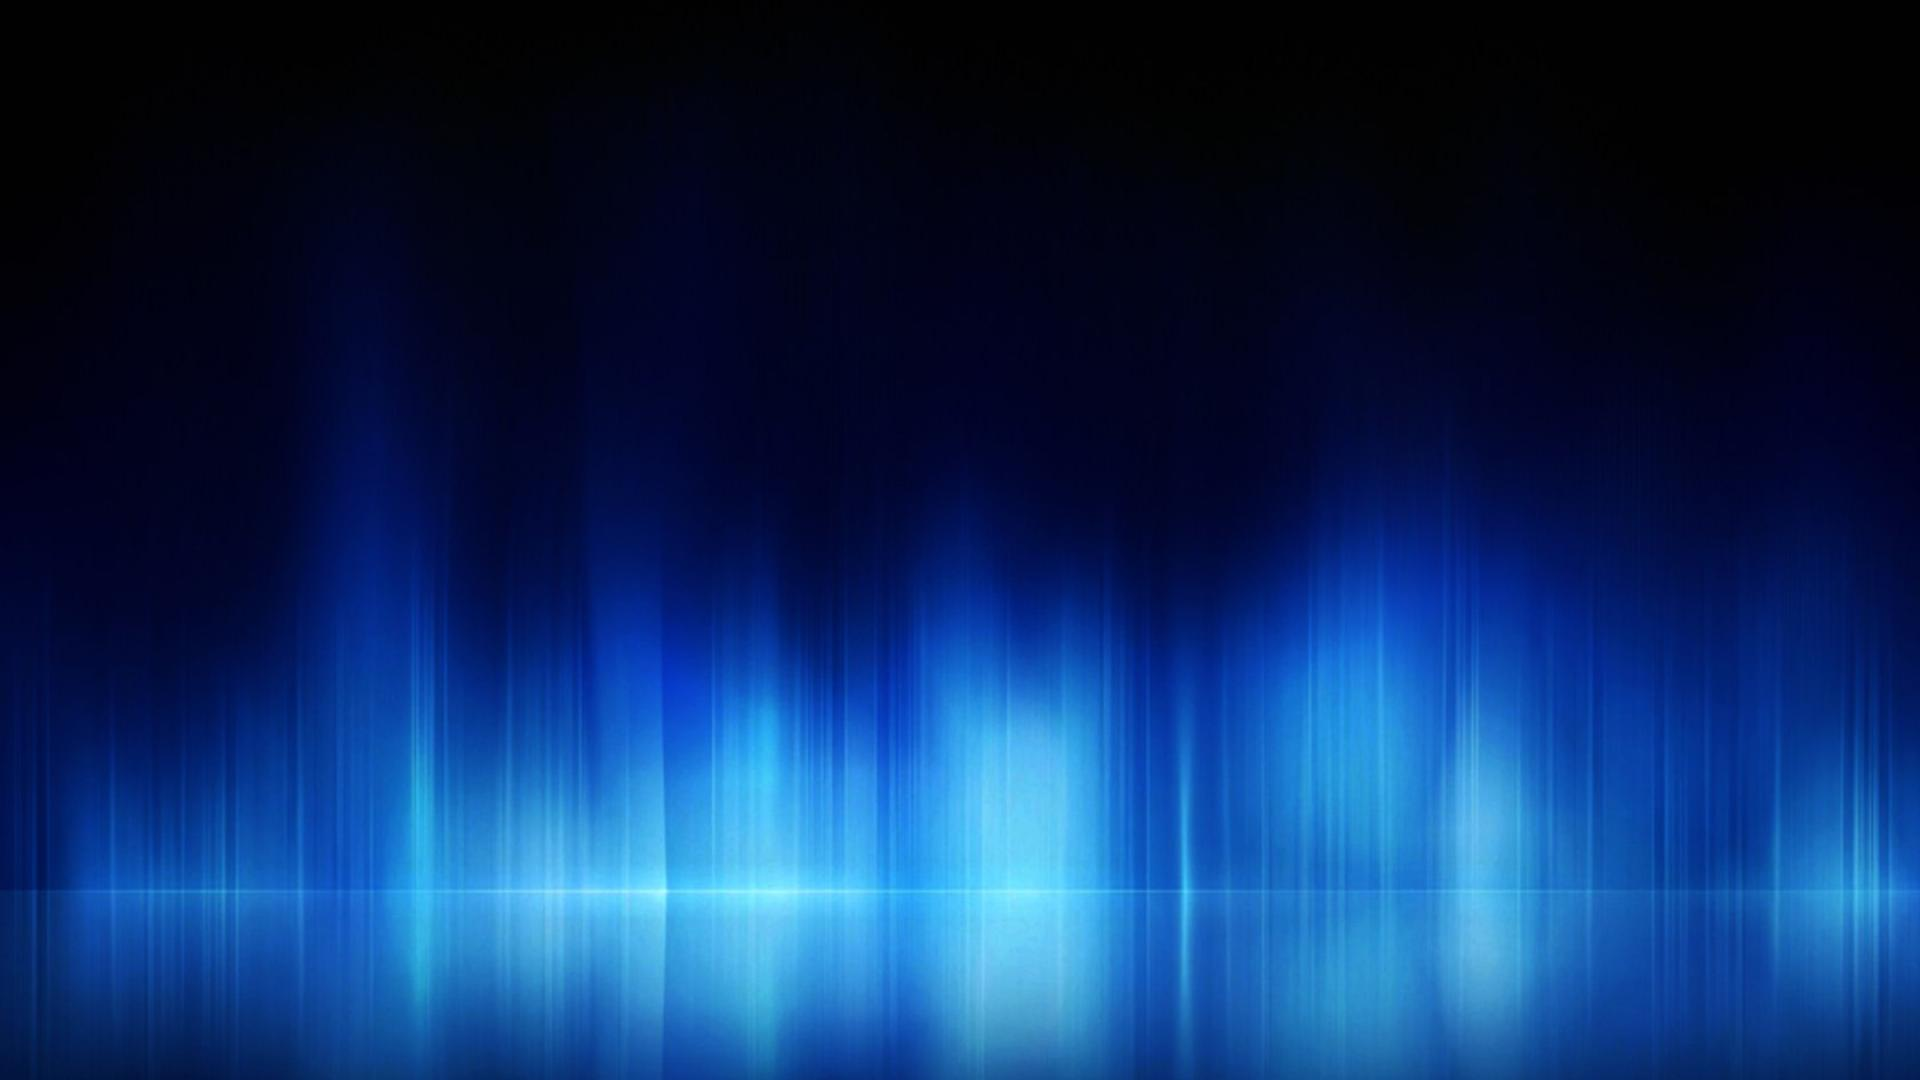 Abstract Background Blue Dark , HD Wallpaper & Backgrounds